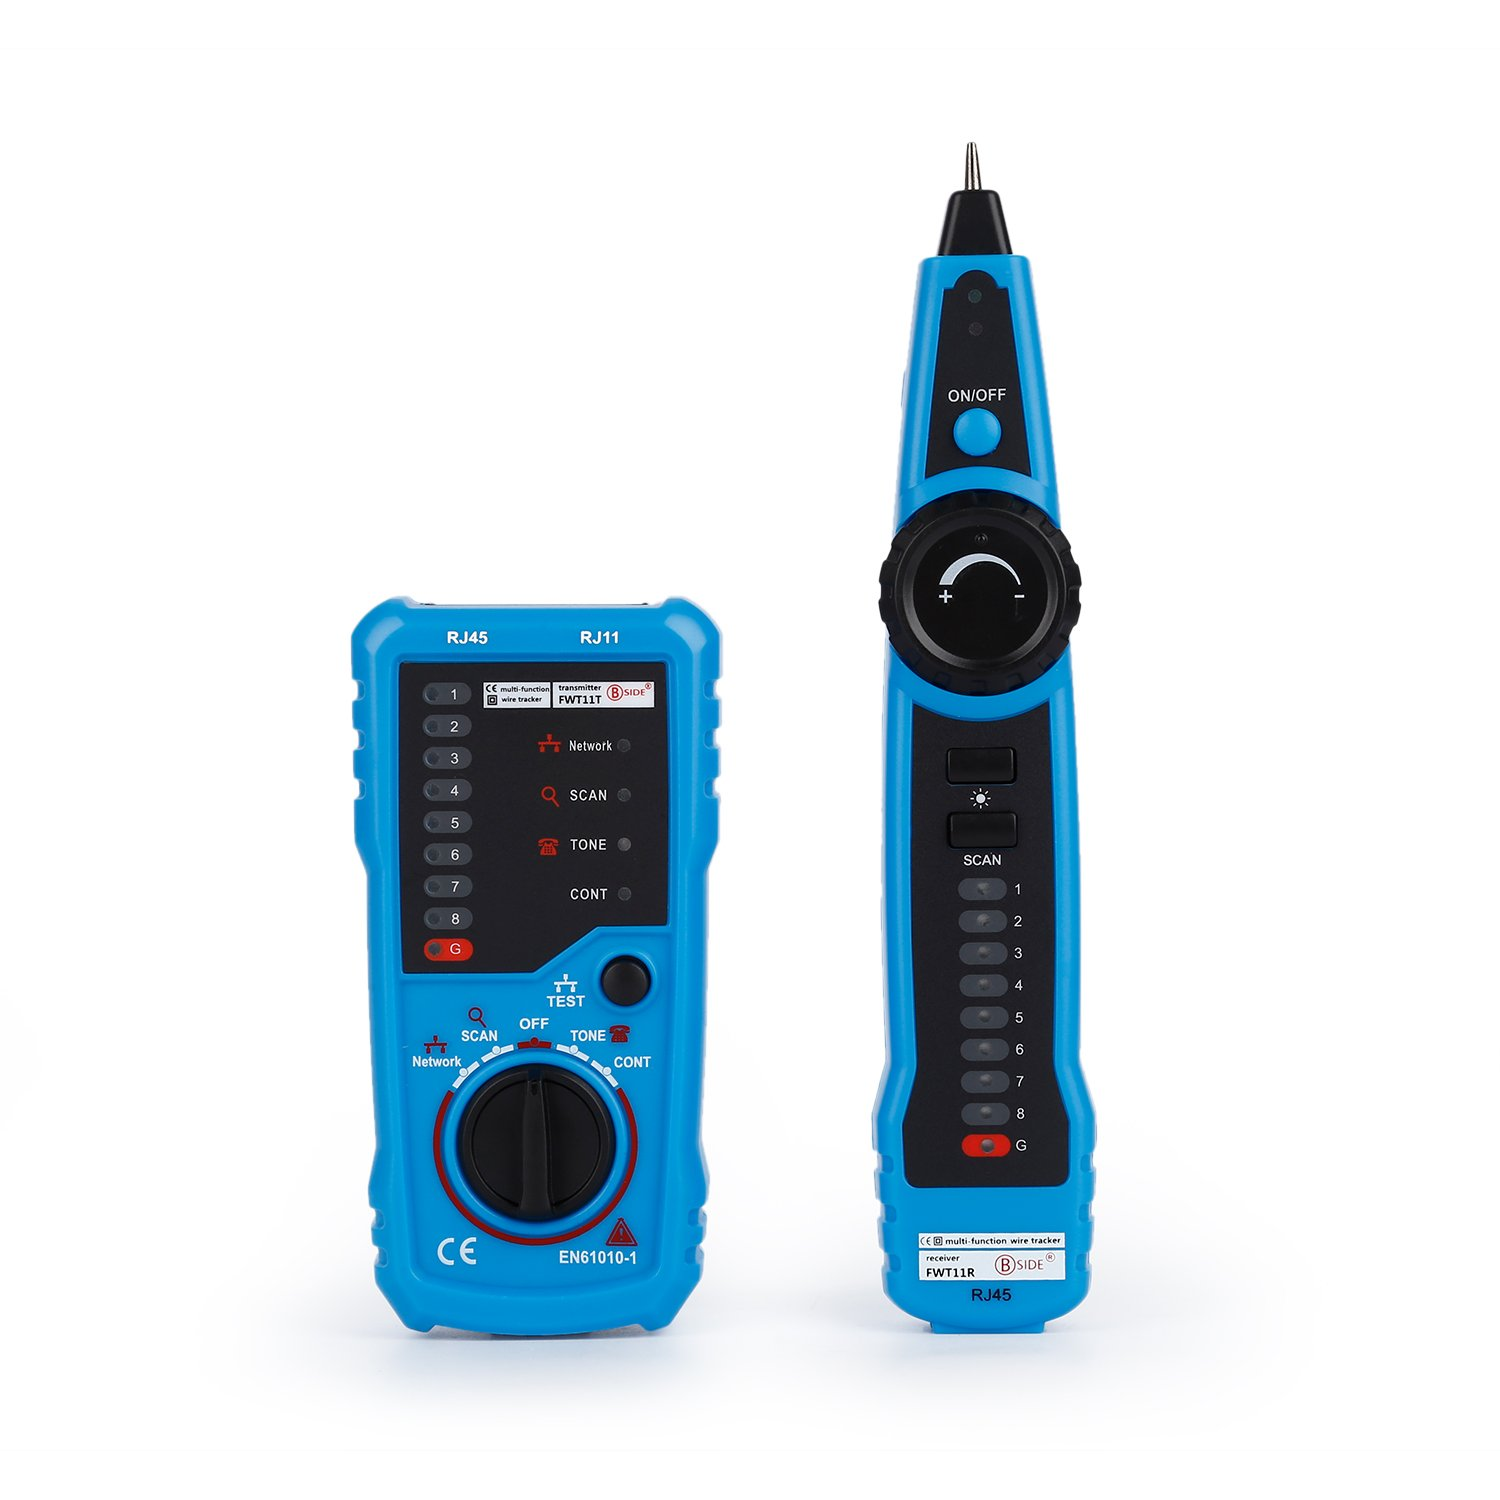 RJ11 RJ45 Cable Tester, LESHP Multifunction Electric Wire Finder Tracker Detector